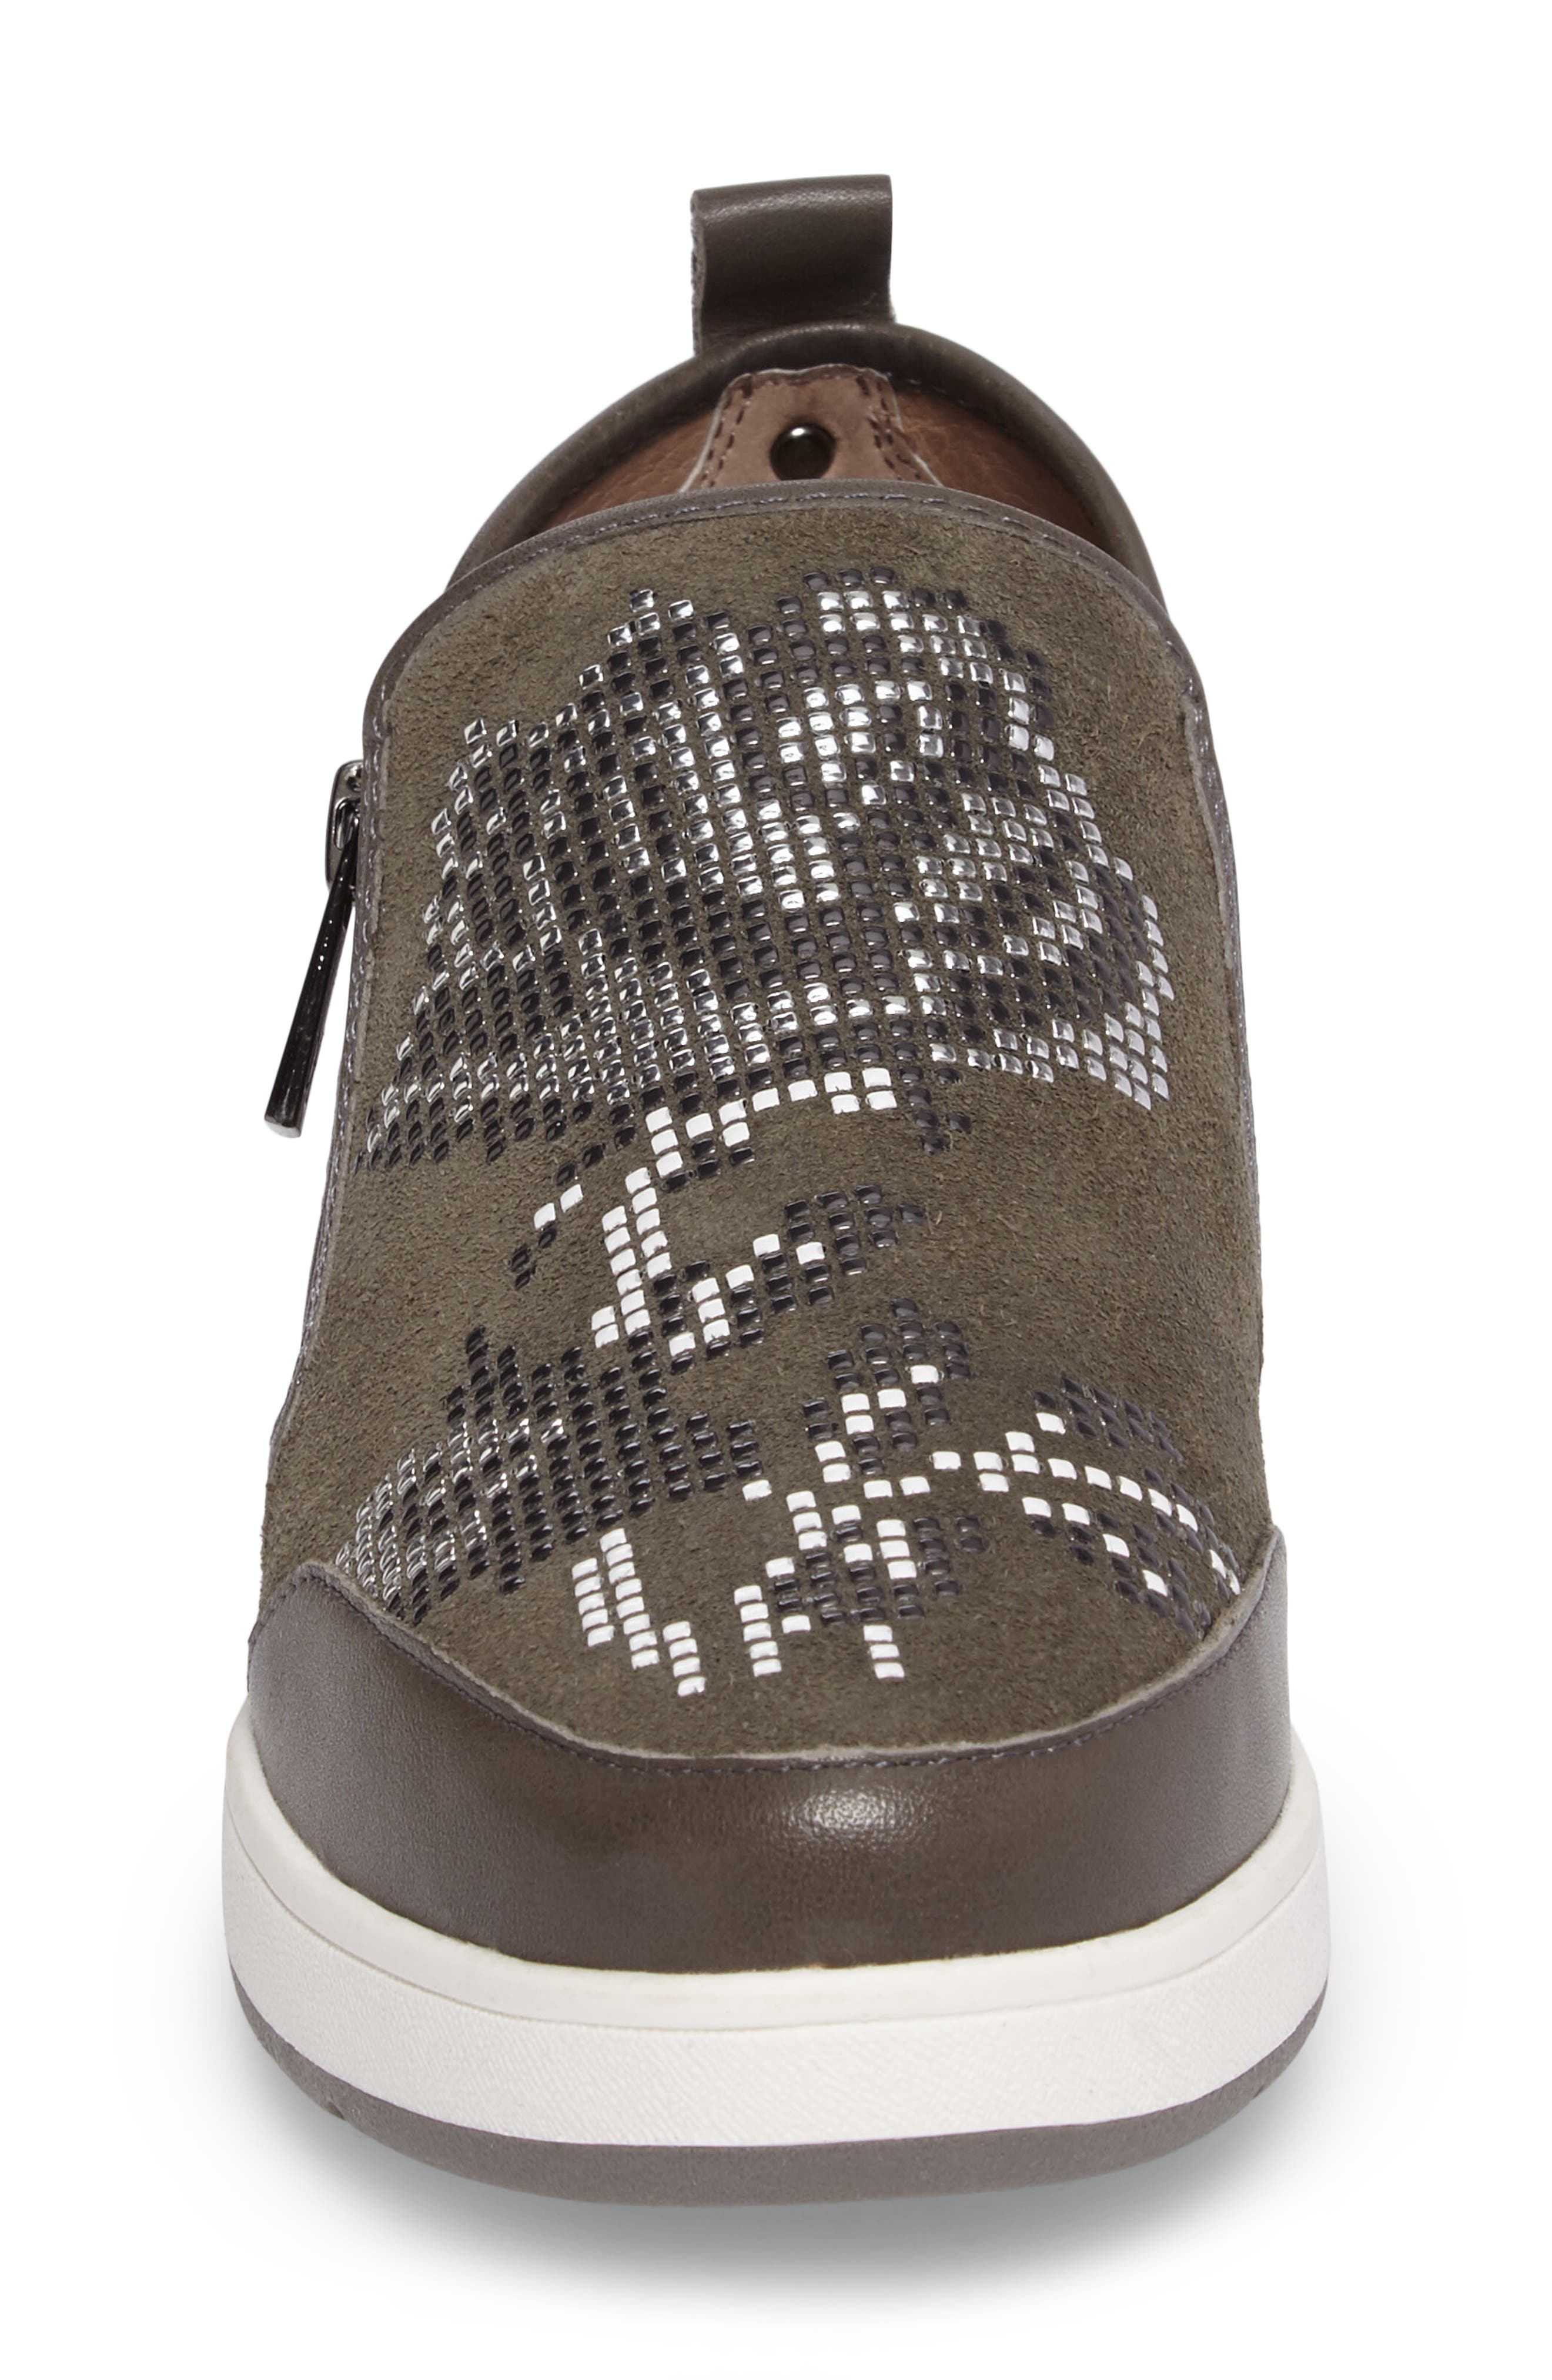 Alternate Image 4  - Donald J Pliner Mylasp Embellished Sneaker (Women)